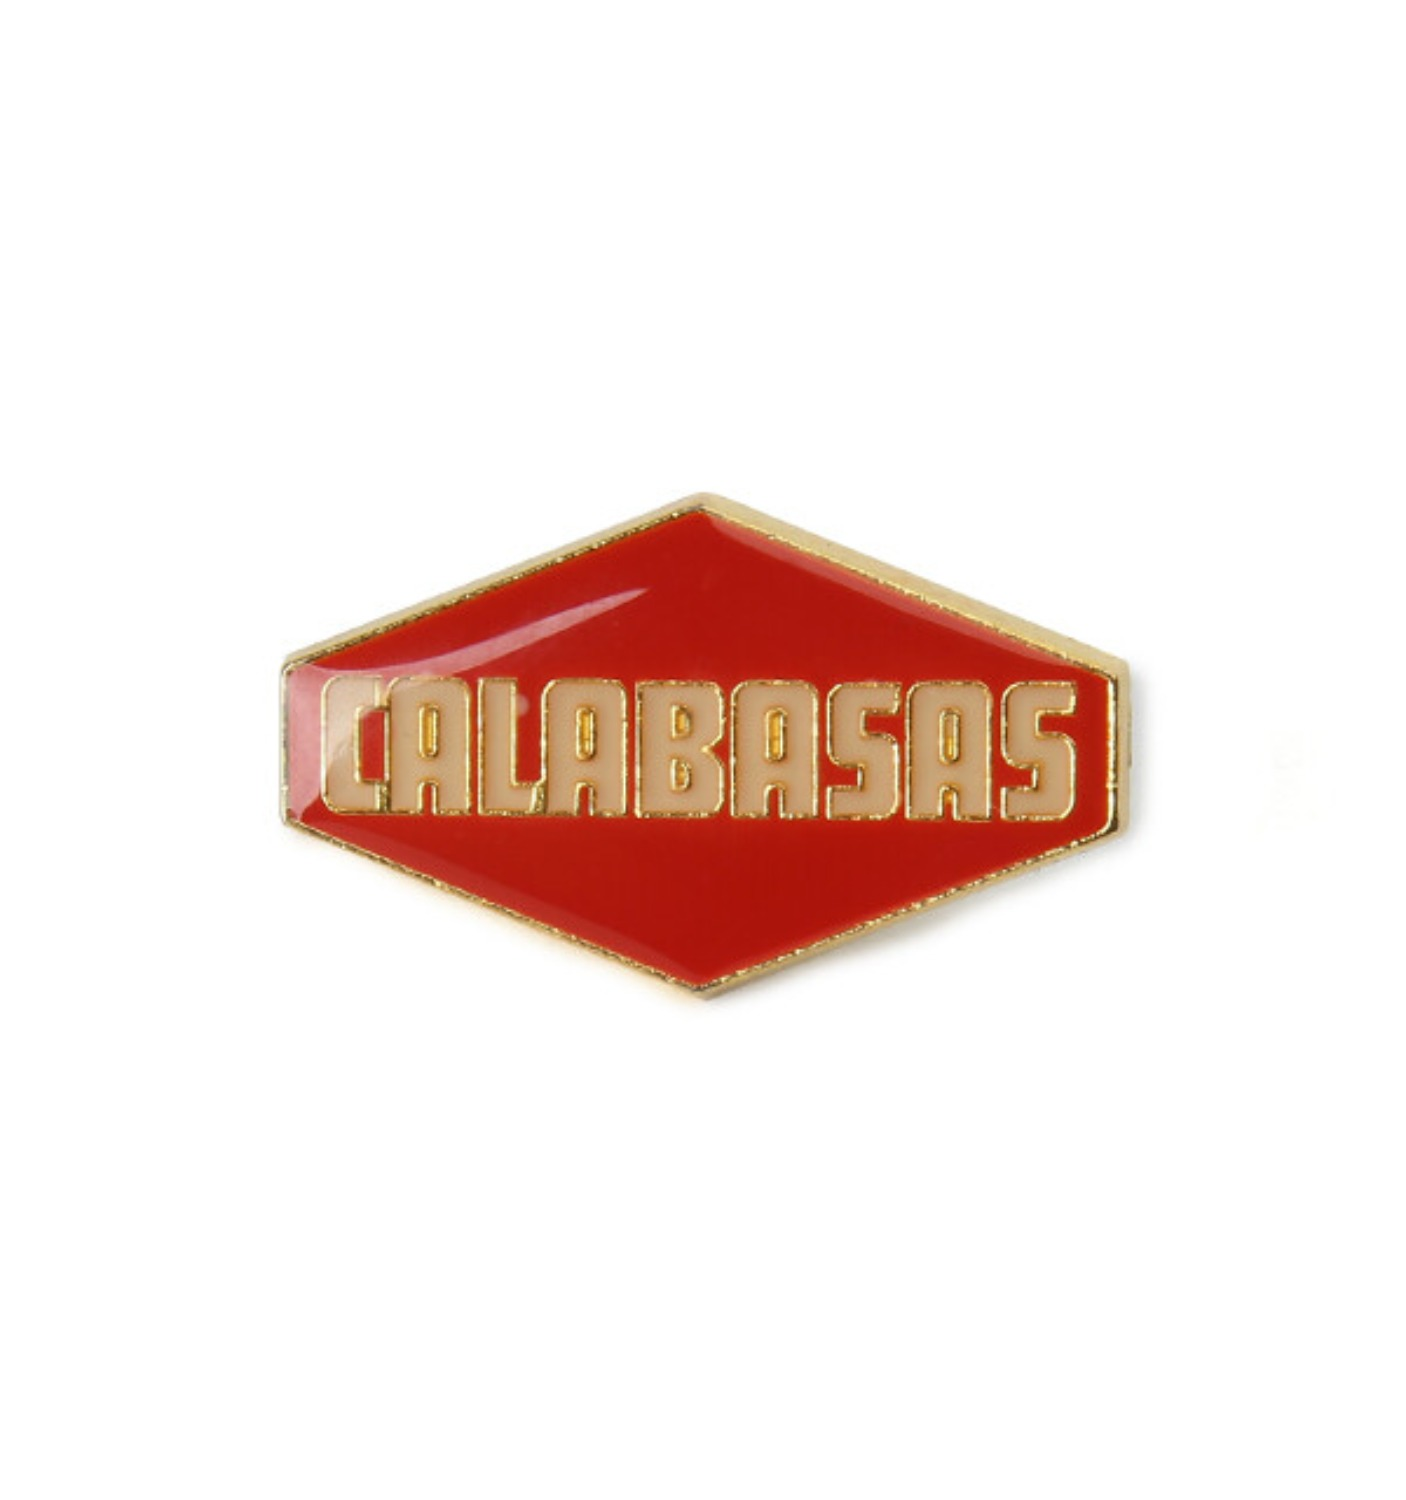 Adidas Calabasas Enamel Pin Red Gold